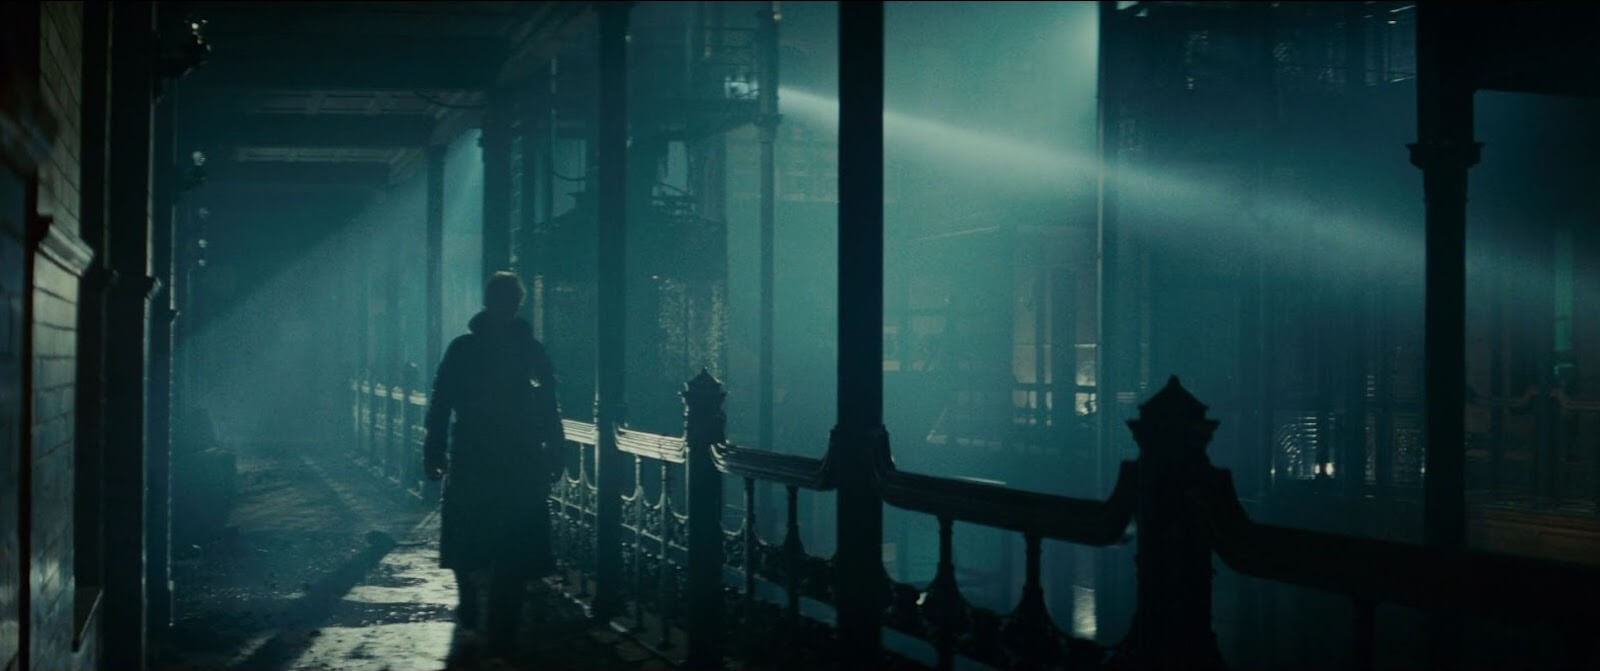 How to Schedule Day for Night Original Bladerunner